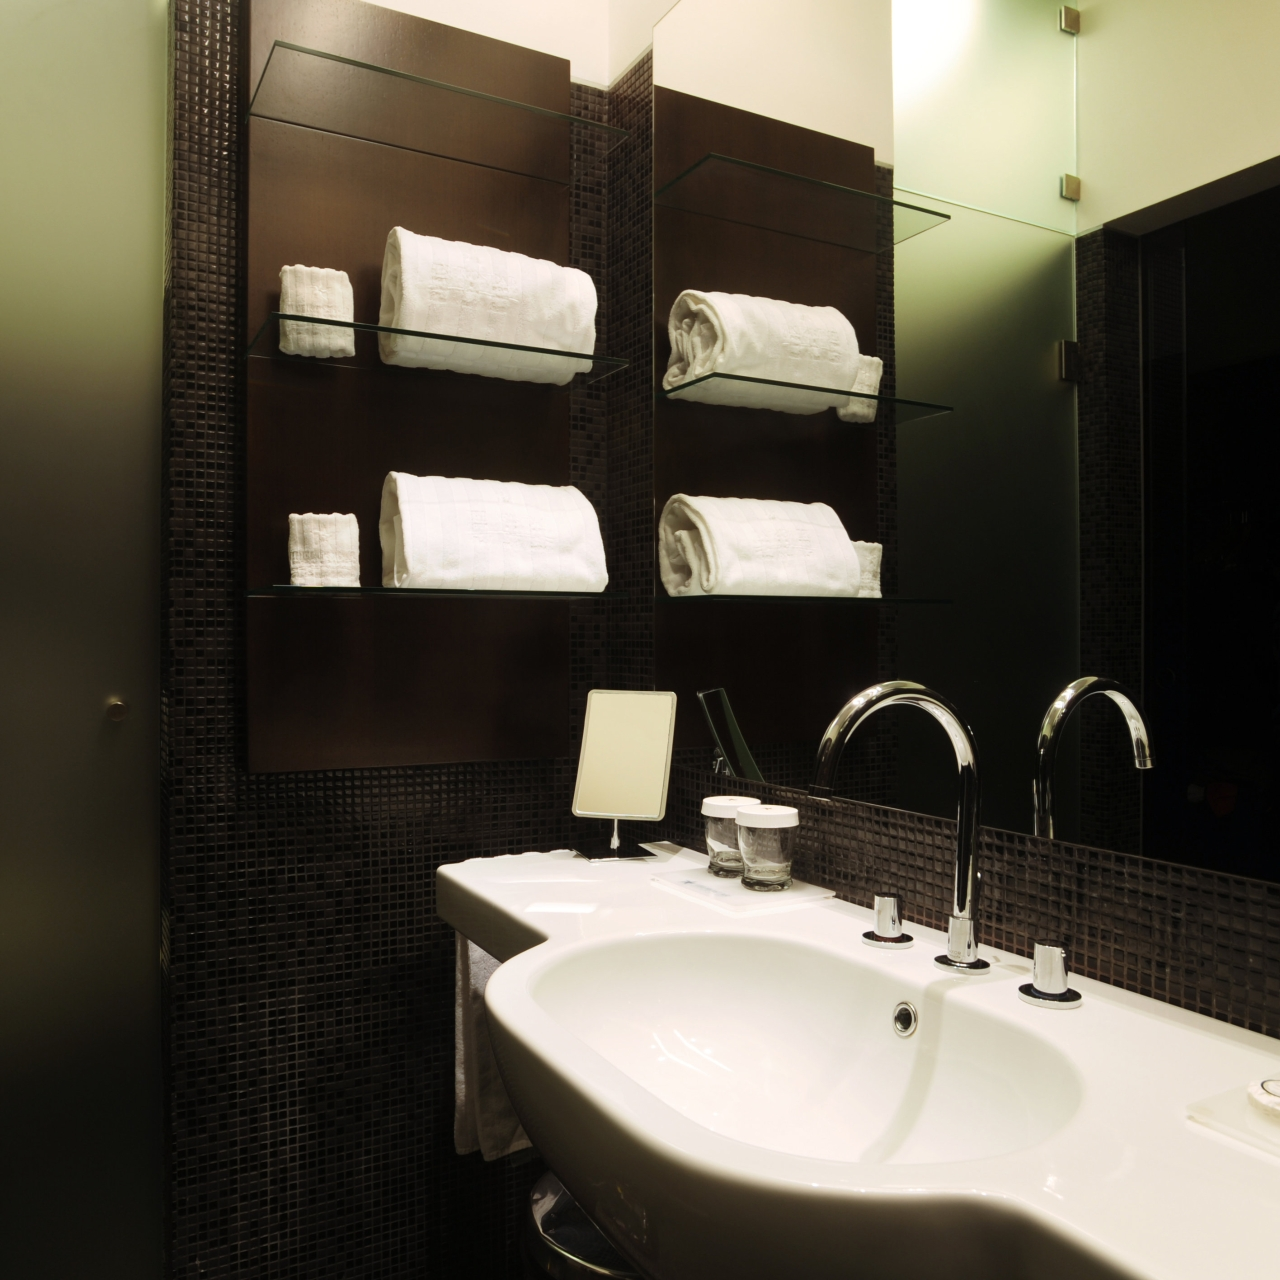 Hotel Iberostar Grand Budapest Hungary At Hrs With Free Services